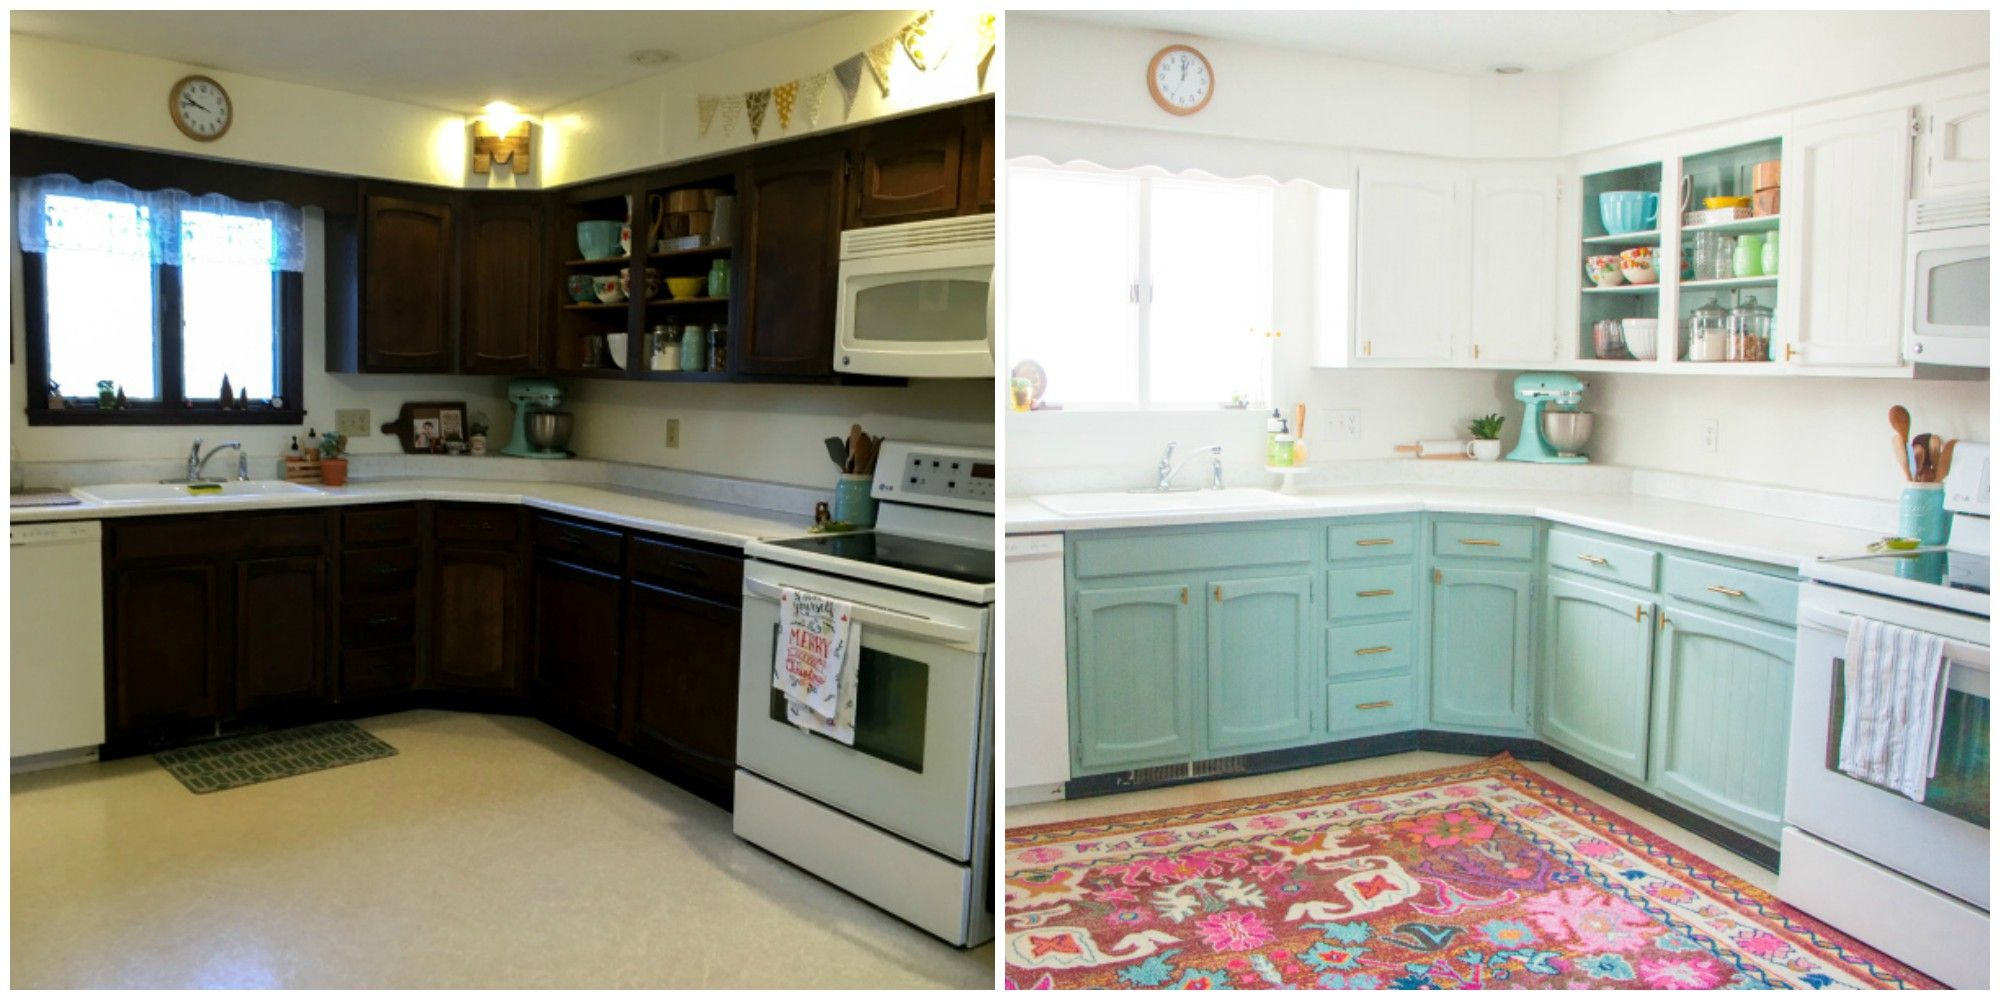 Kitchen Renovation Cost Just $250